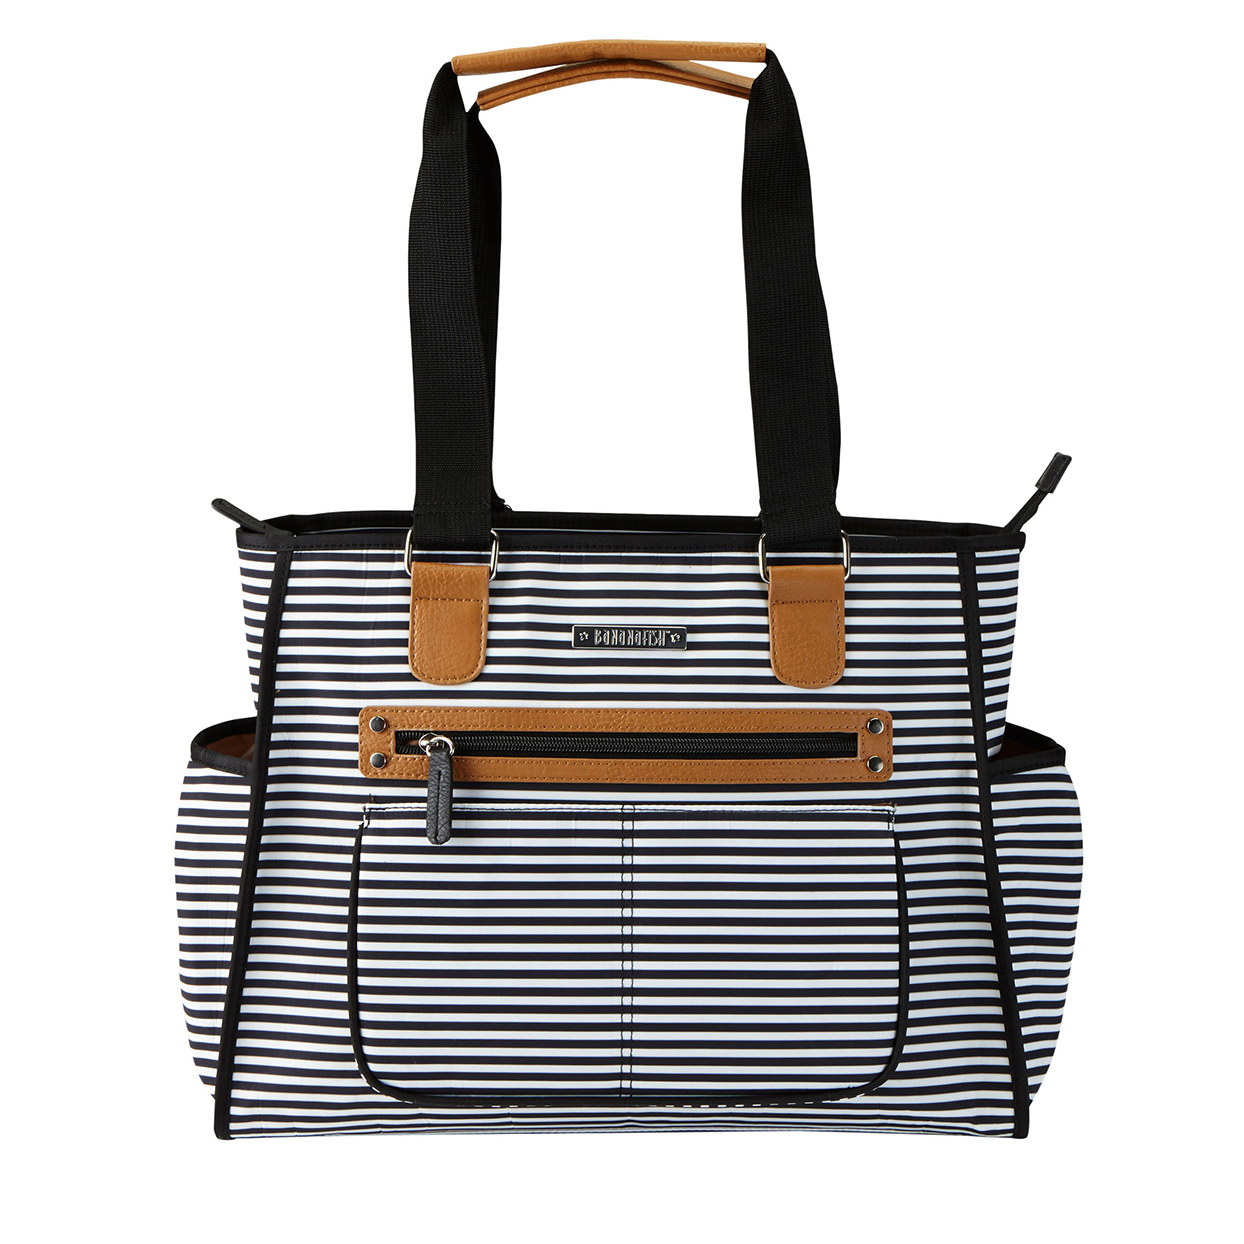 black and white striped Bananafish Tote